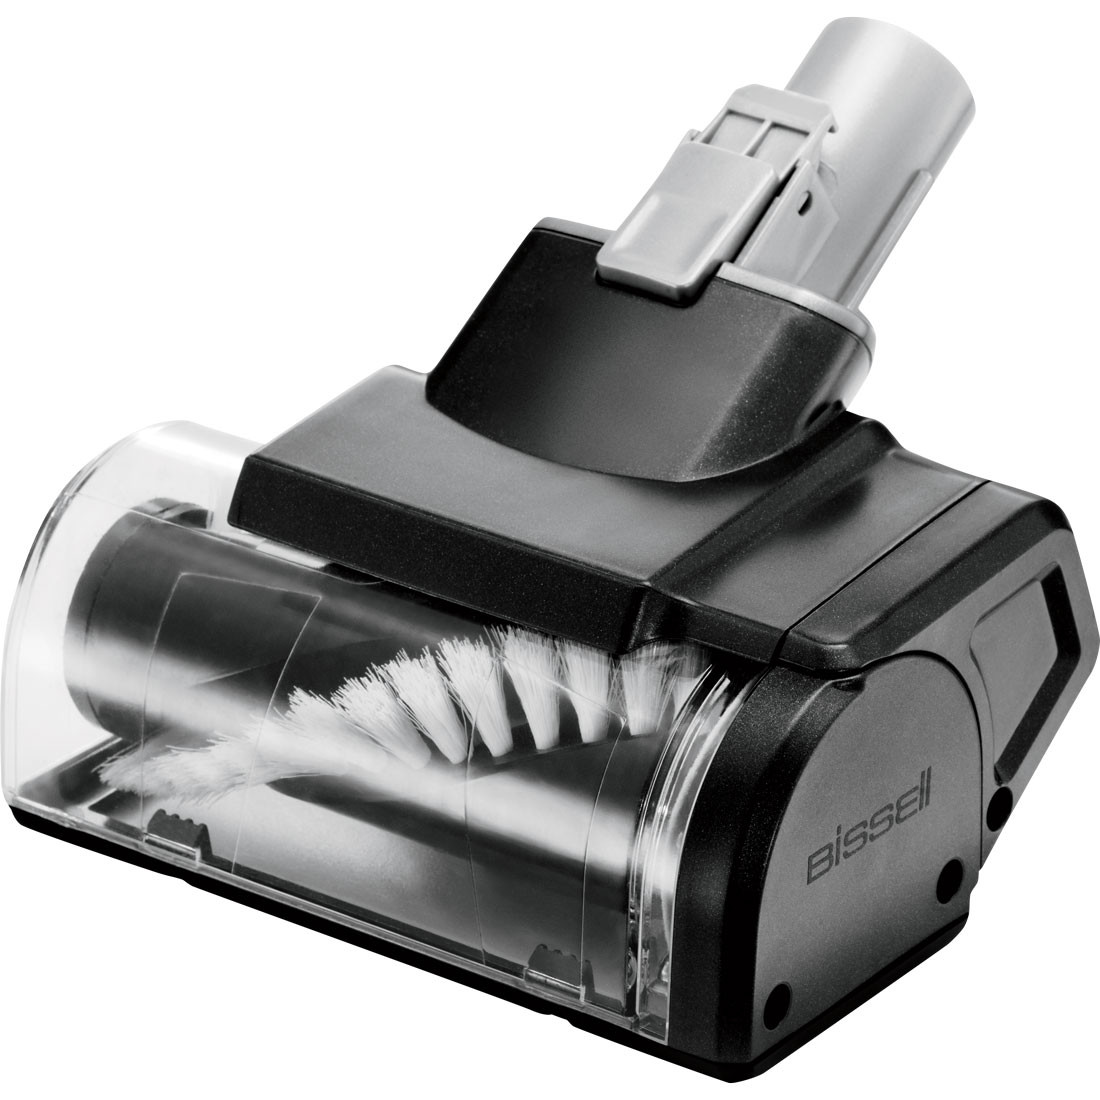 Brosse turbo motorisée pour Bissell Icon